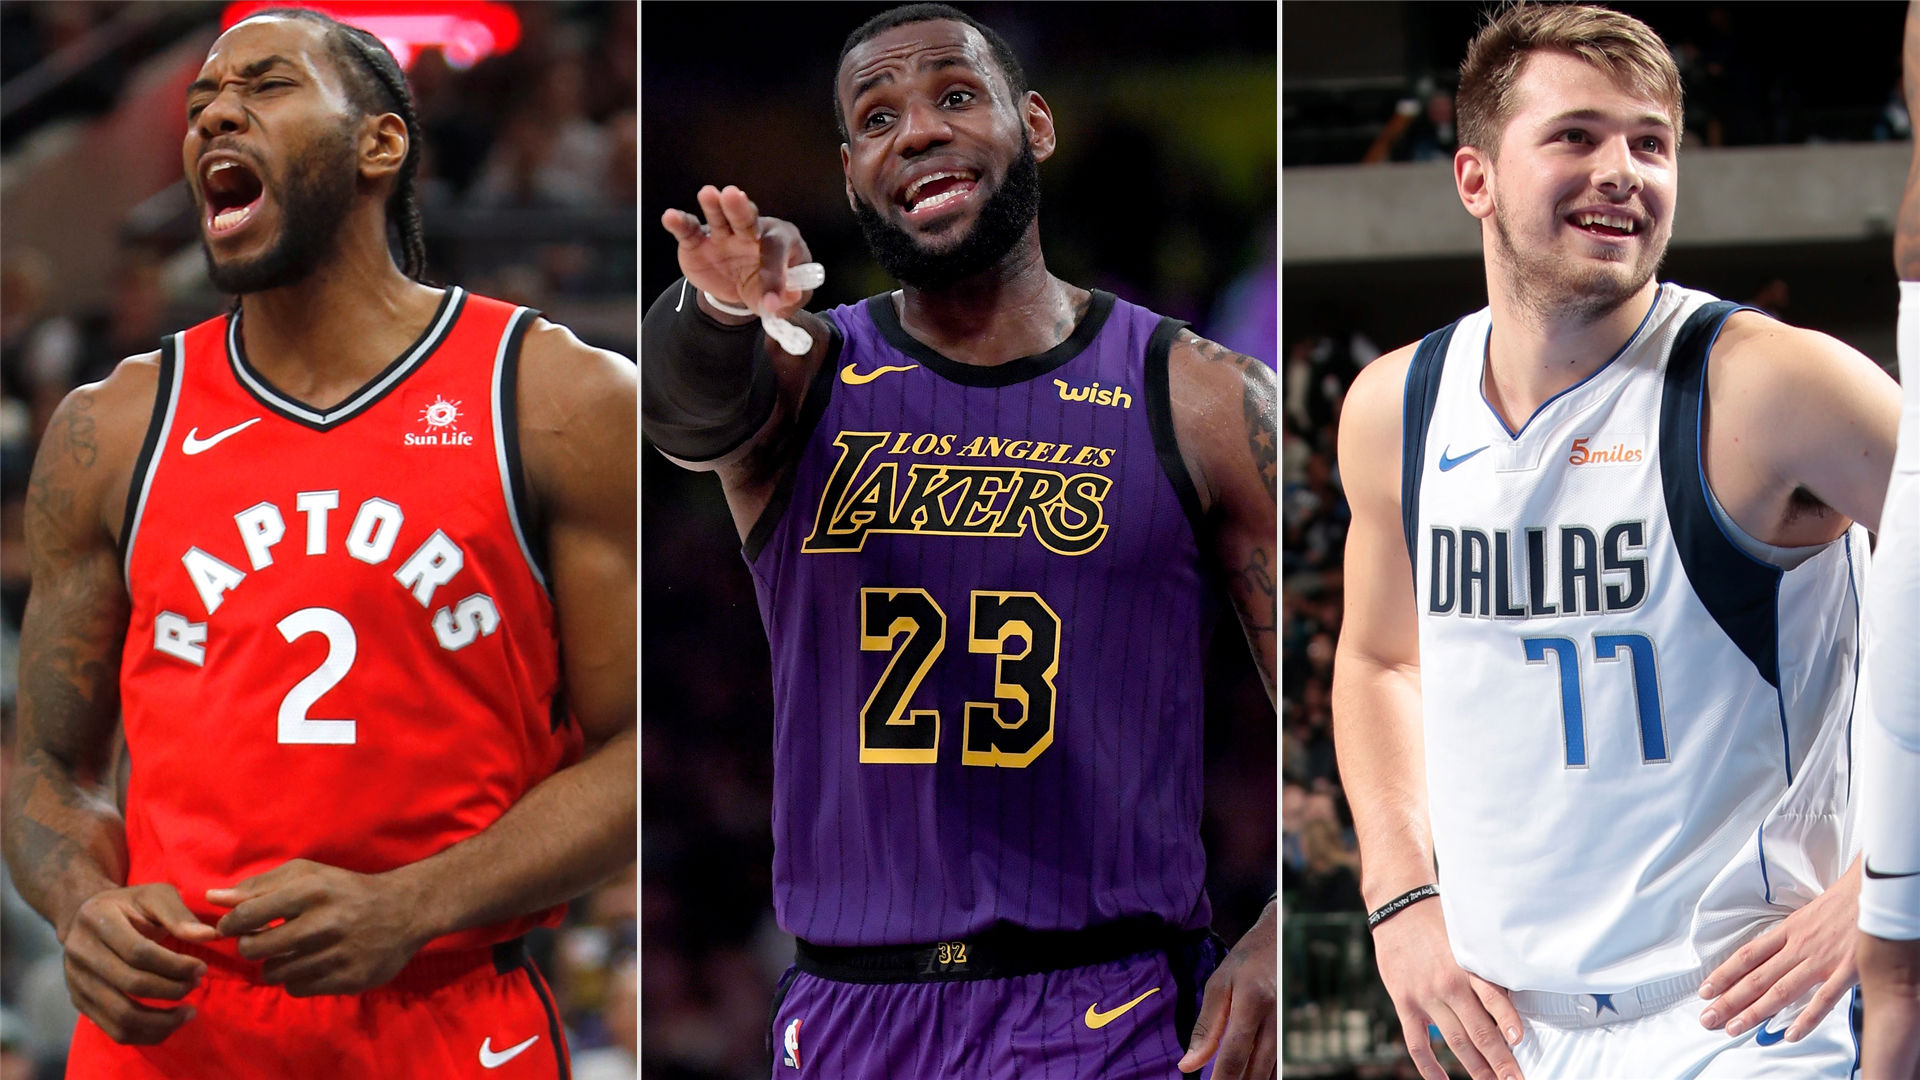 Nba celebrity game 2019 pictures